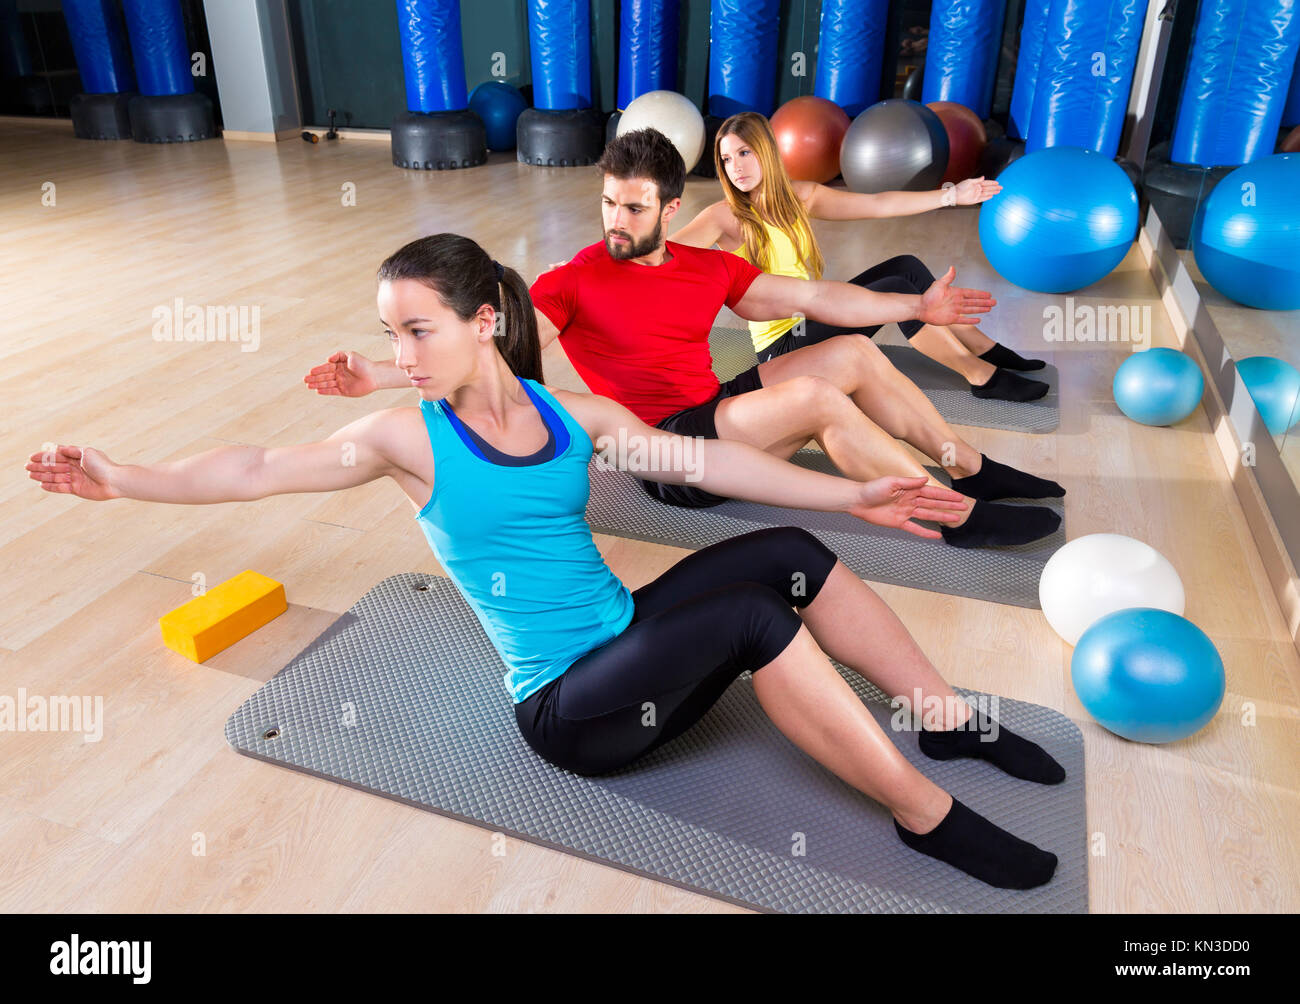 Pilates people group exercise man and women at fitness gym. - Stock Image